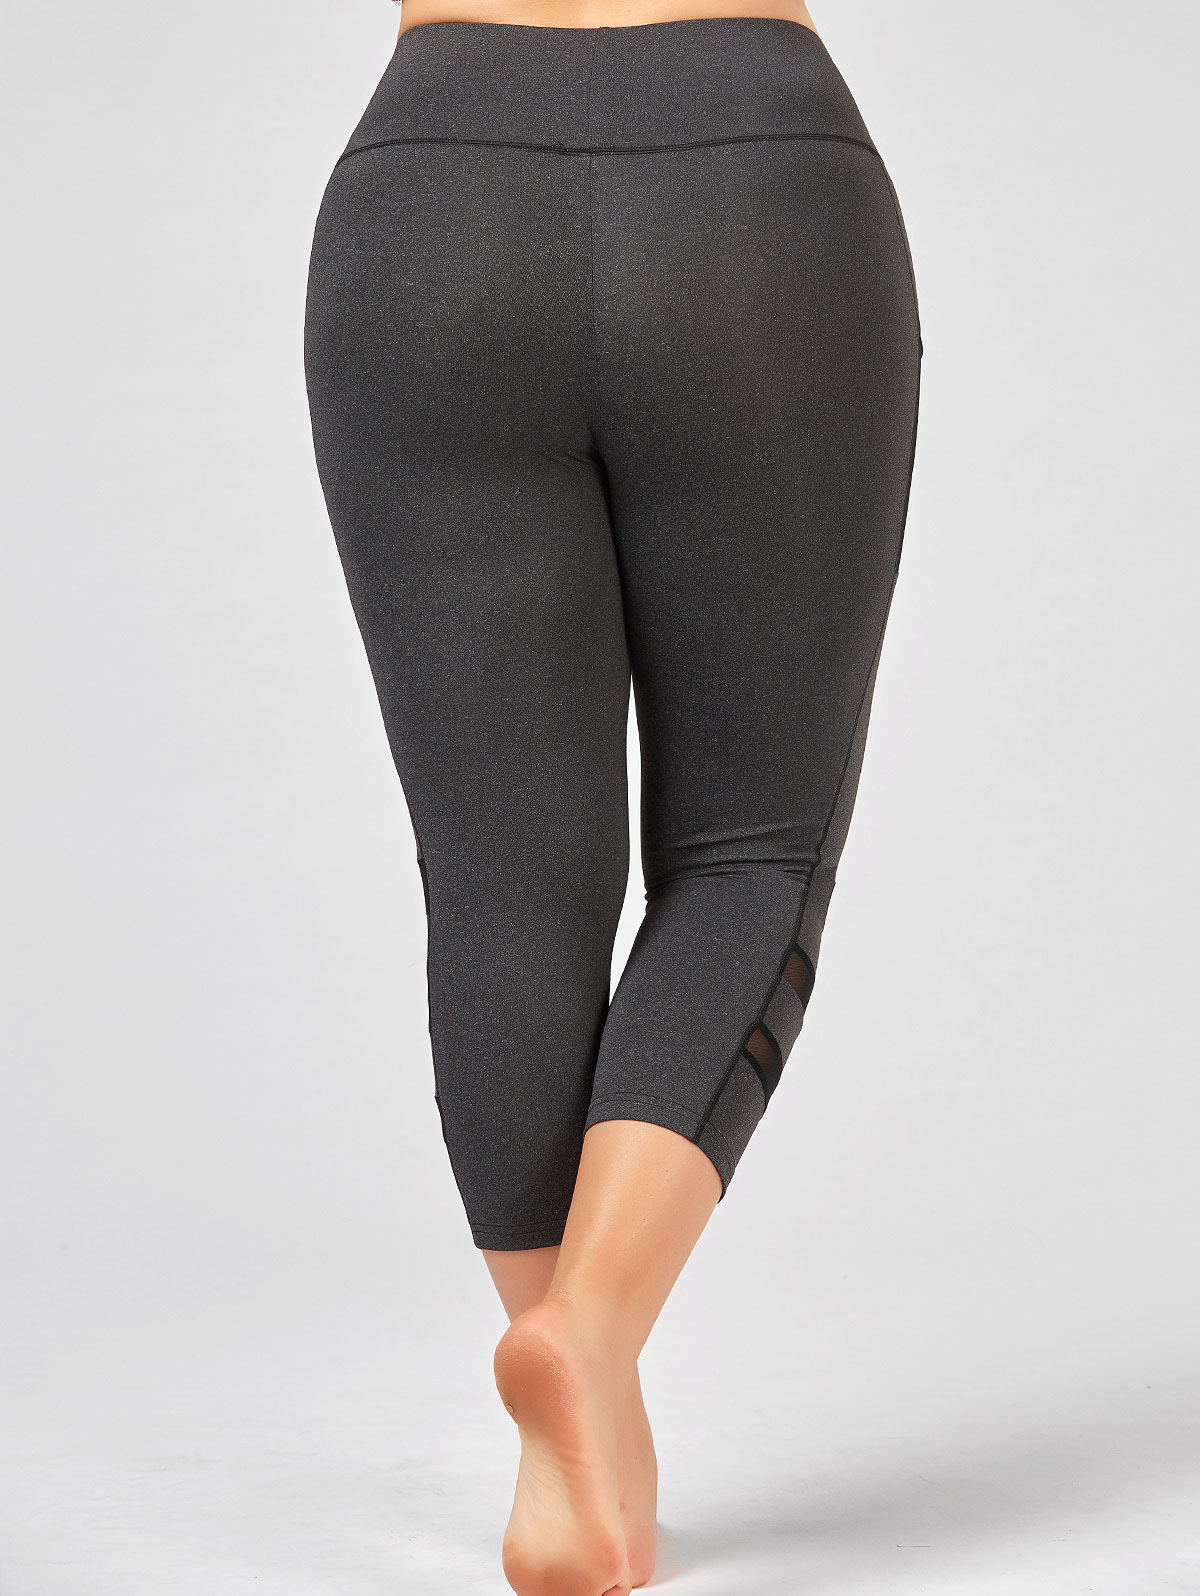 897920f5cf1ee ZAFUL Plus Size Fishnet Mesh Panel Fitness Leggings High Waist Mesh Workout  Leggings Big Booty Yoga Pants-in Yoga Pants from Sports   Entertainment on  ...